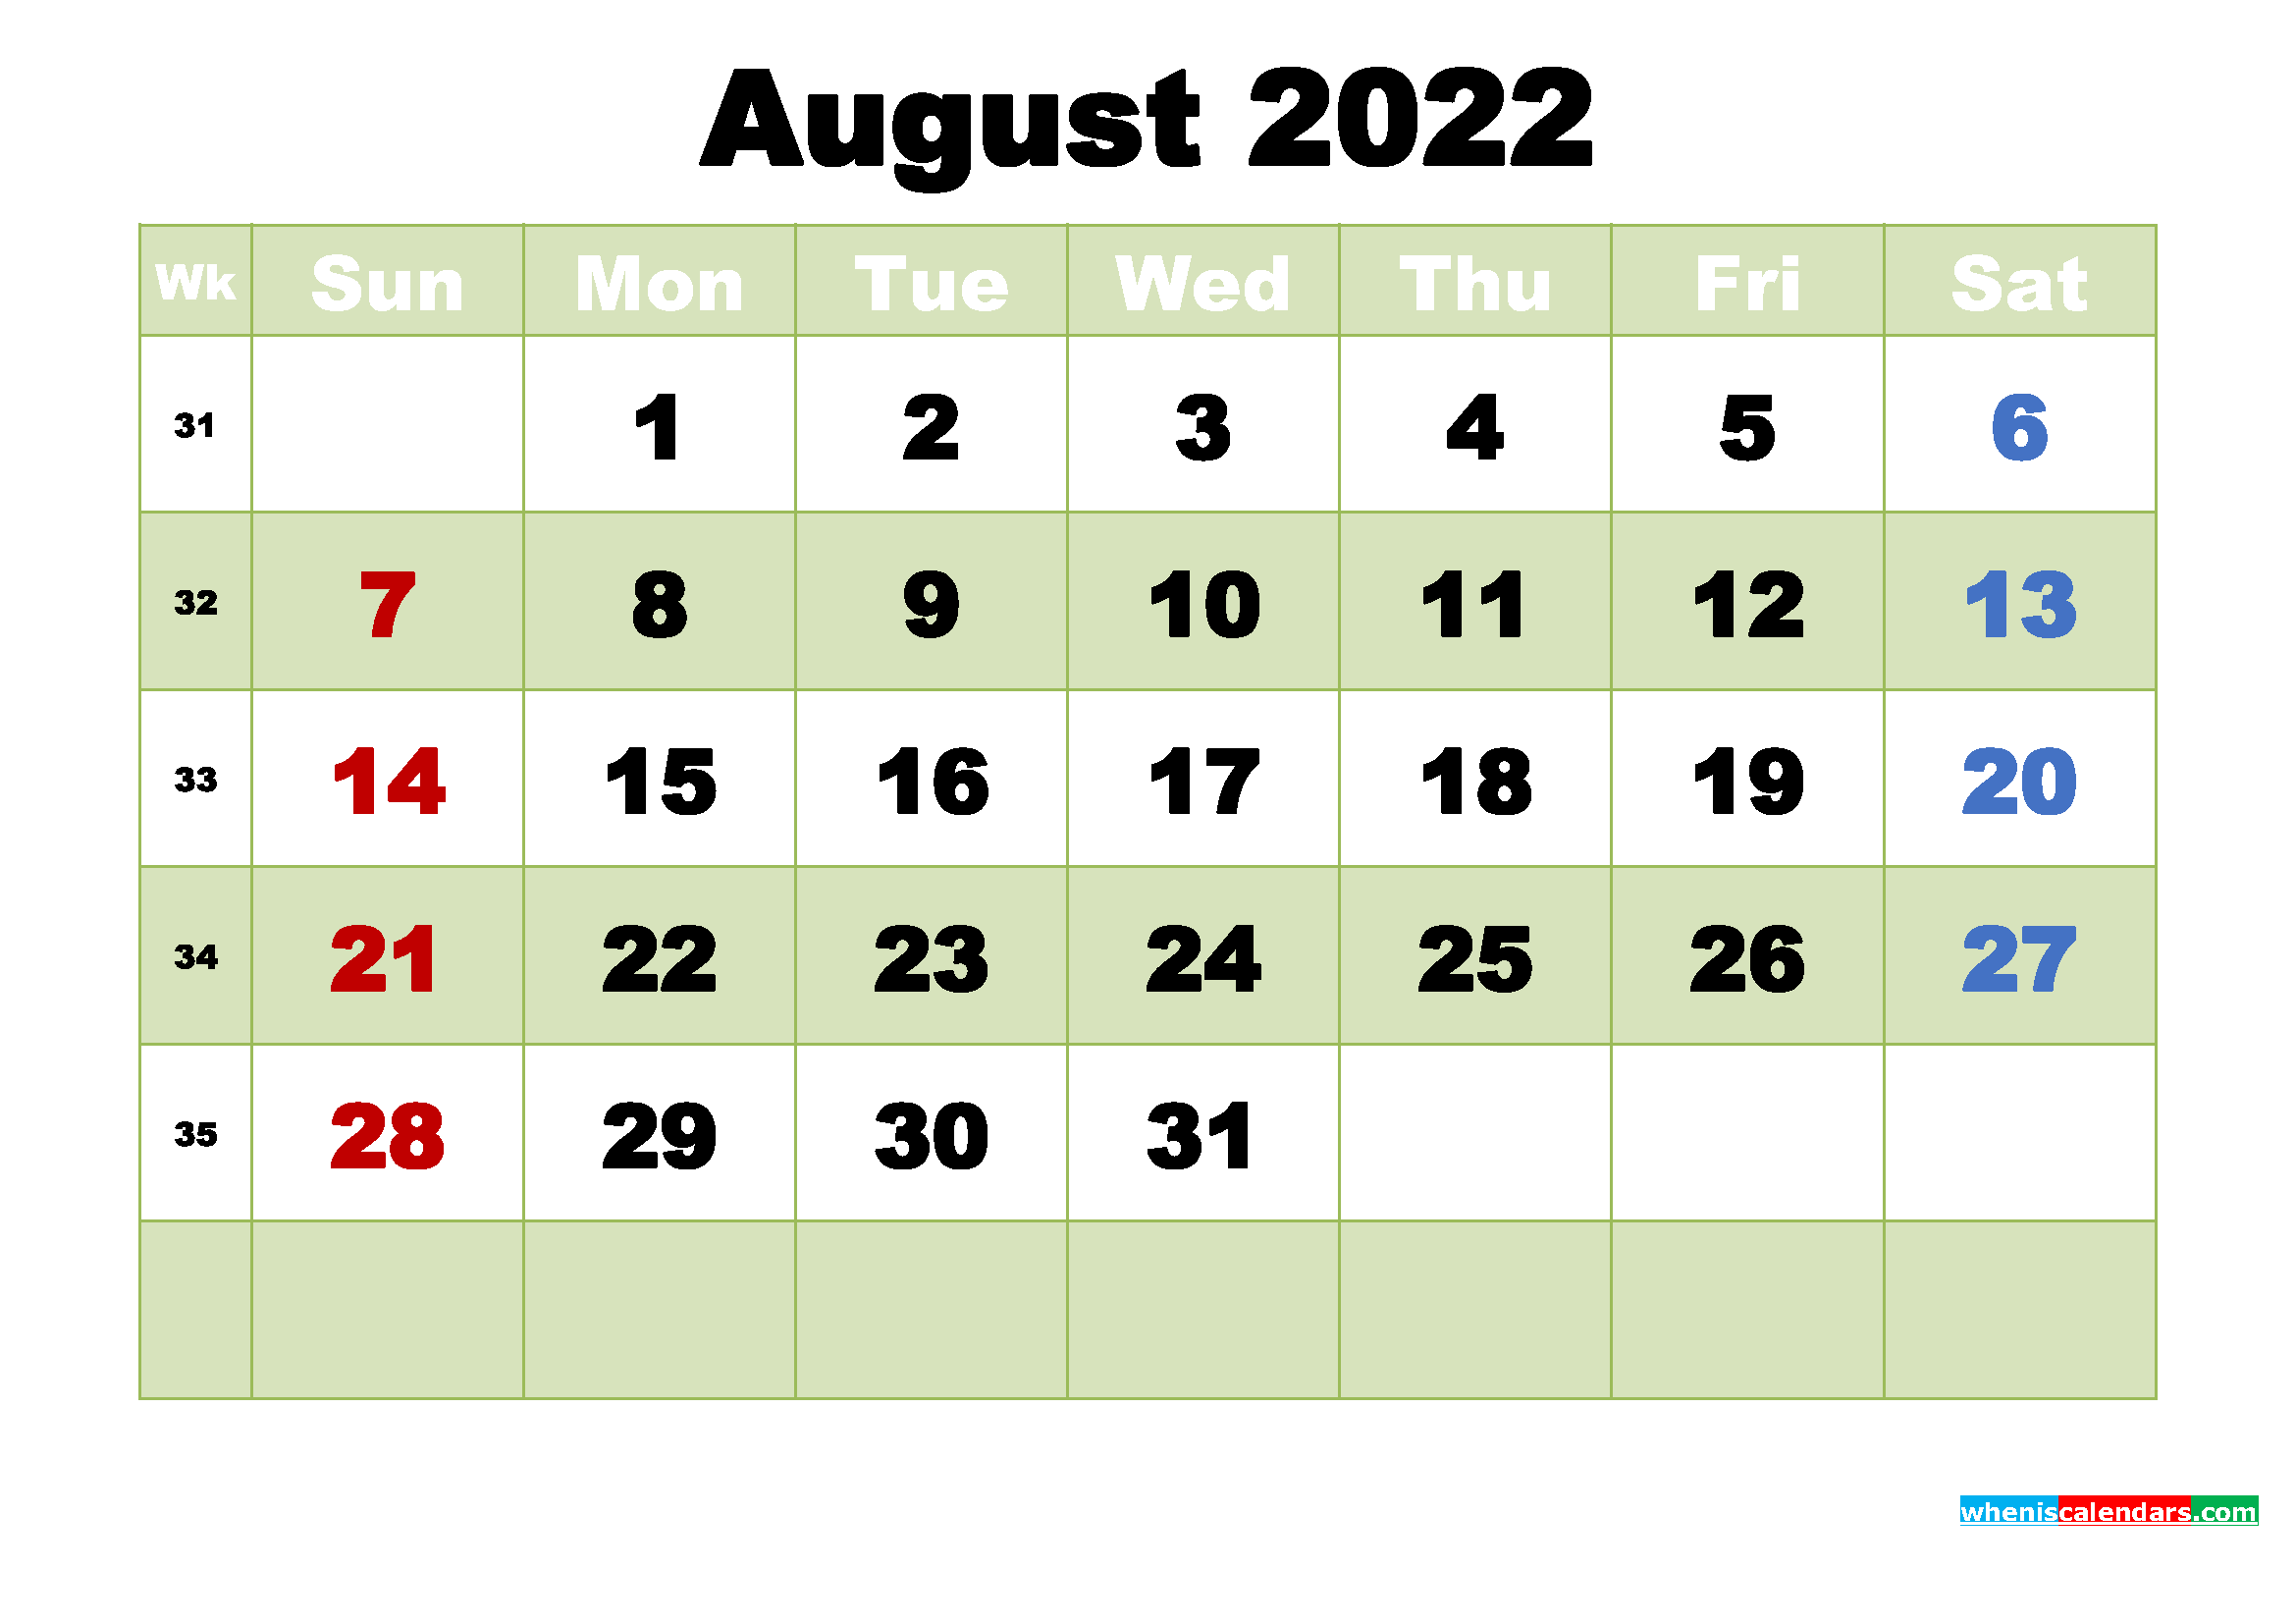 Printable 2022 Calendar by Month August